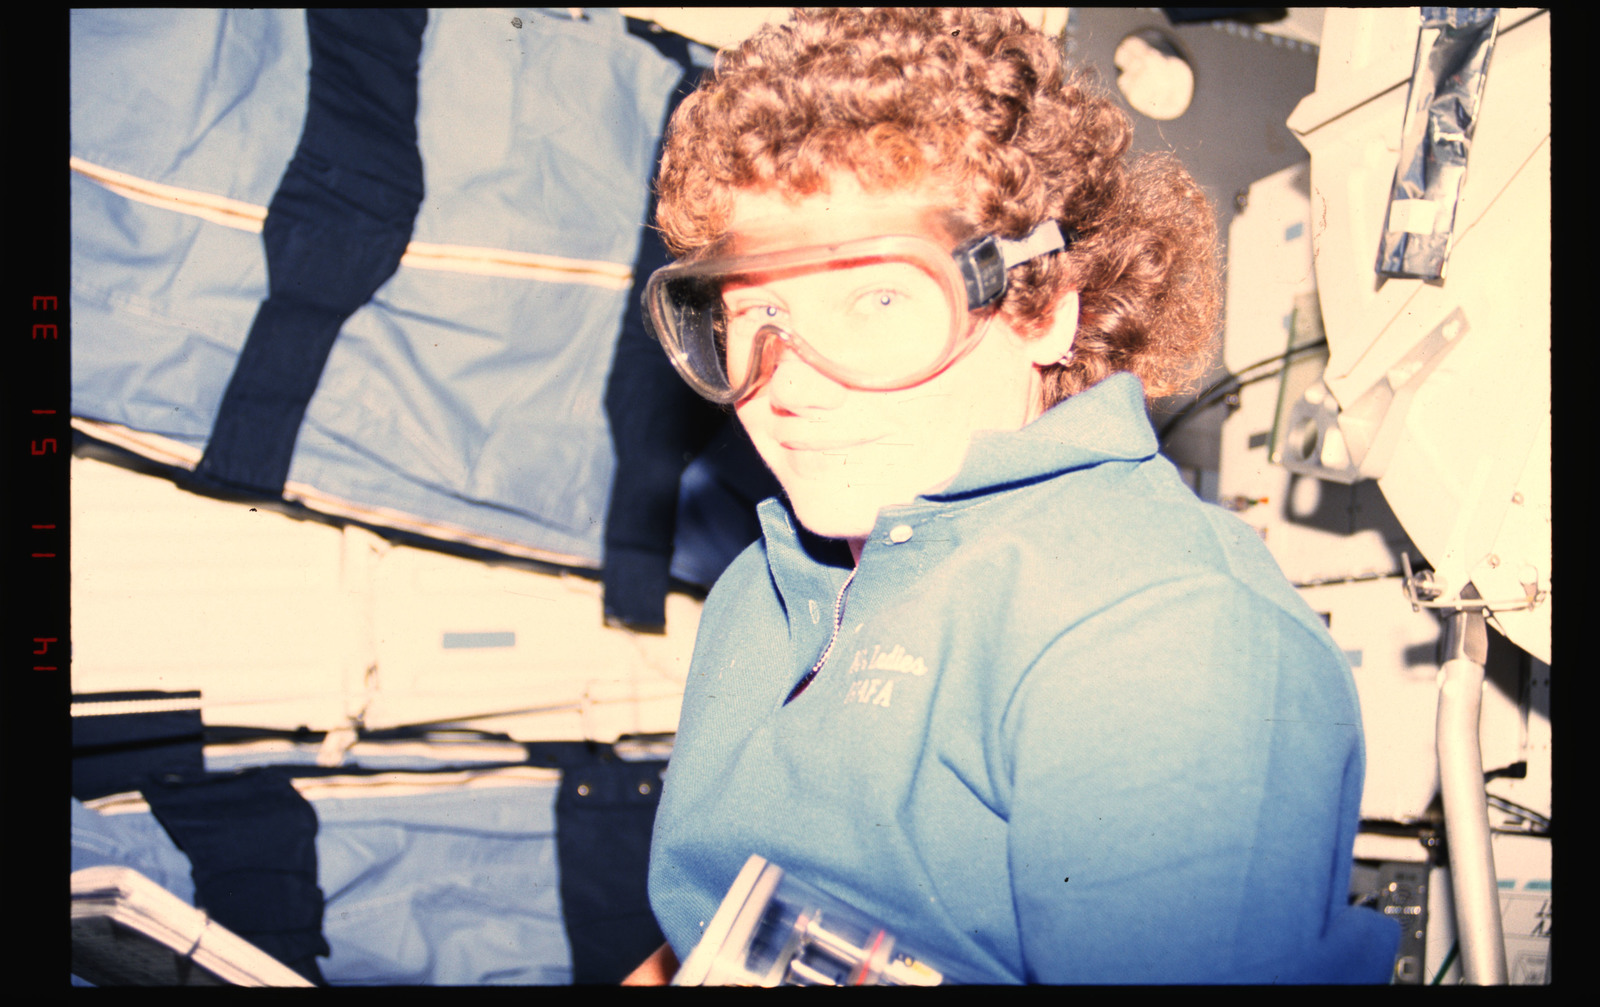 STS054-01-036 - STS-054 - Crewmember in the middeck with Commercial Generic Bioprocessing experiment.